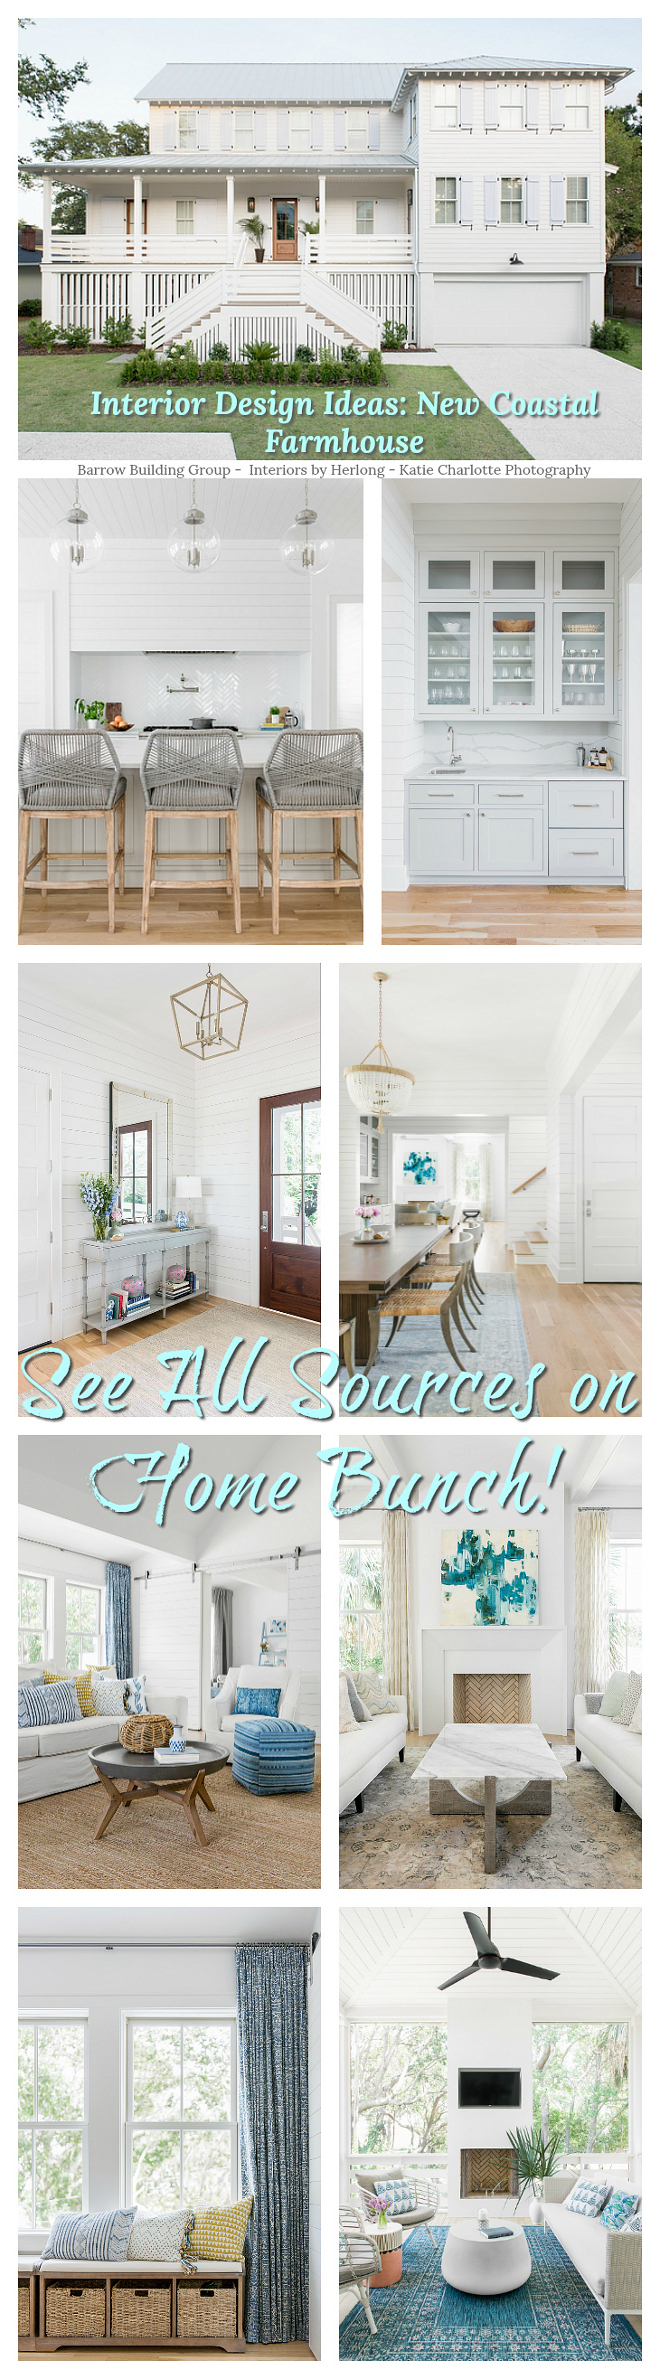 Interior Design Ideas New Coastal Farmhouse see sources and paint colors on Home Bunch